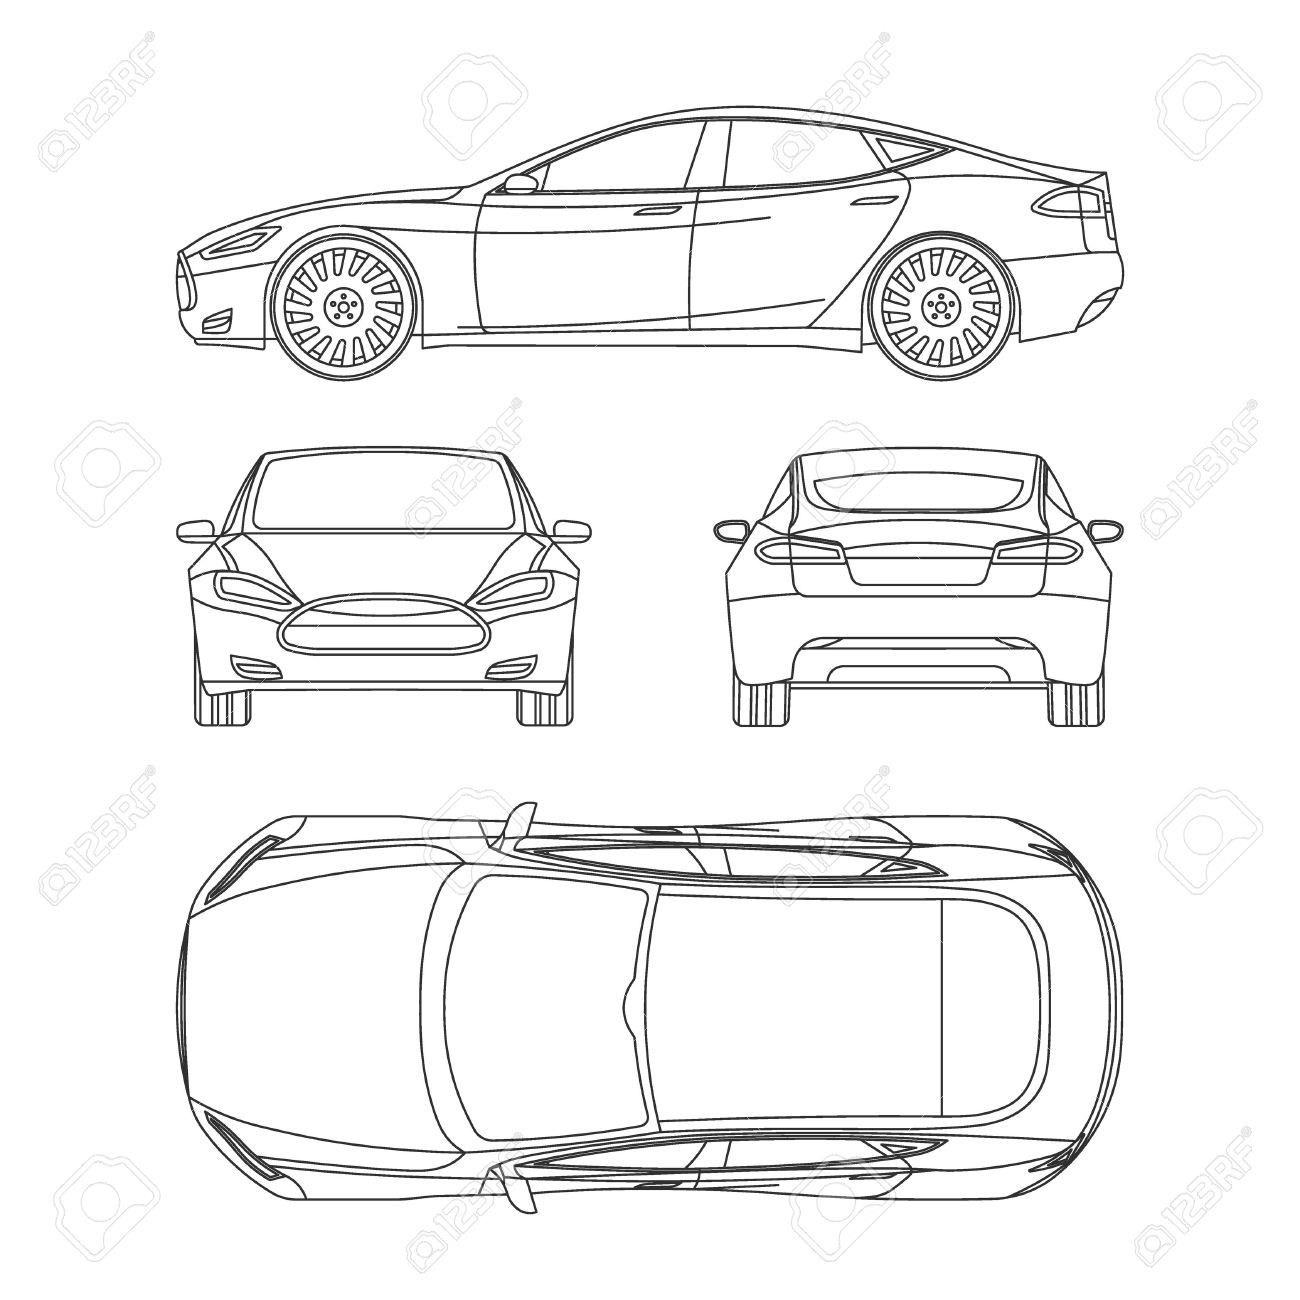 Car Line Draw Insurance Rent Damage Condition Report Form Blueprint In Car Damage Report Template Callfor Report Template Blueprints Professional Templates